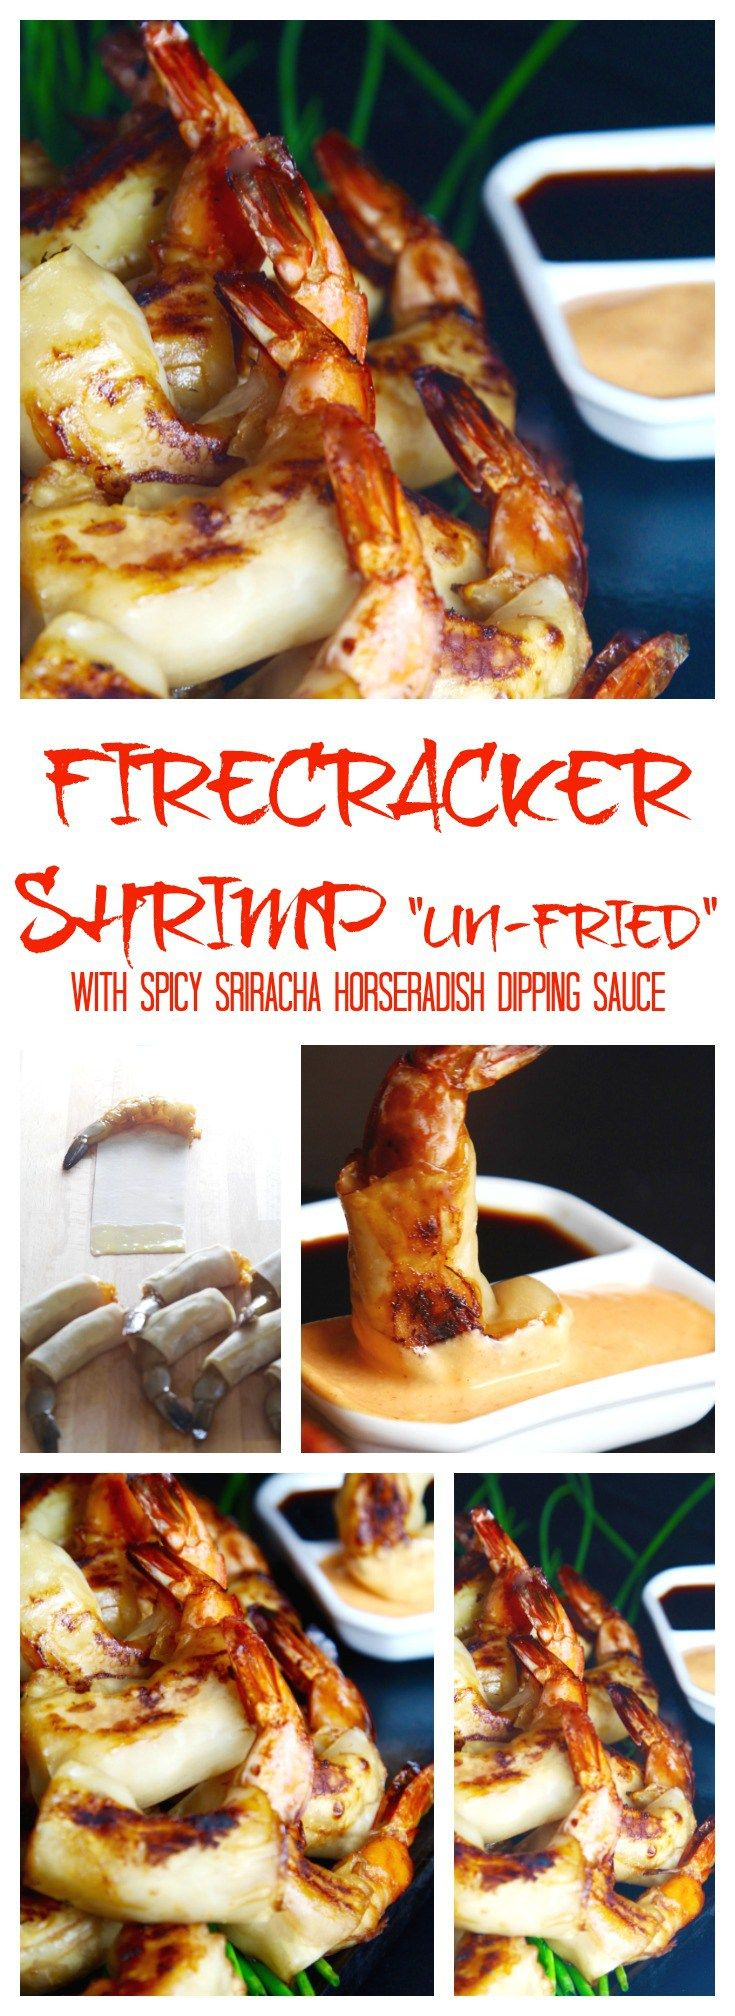 """Serve easy """"un-fried"""" firecracker shrimp dipped in spicy horseradish-sriracha sauce at your party, a lighter, healthier recipe that skips frying in oil!"""